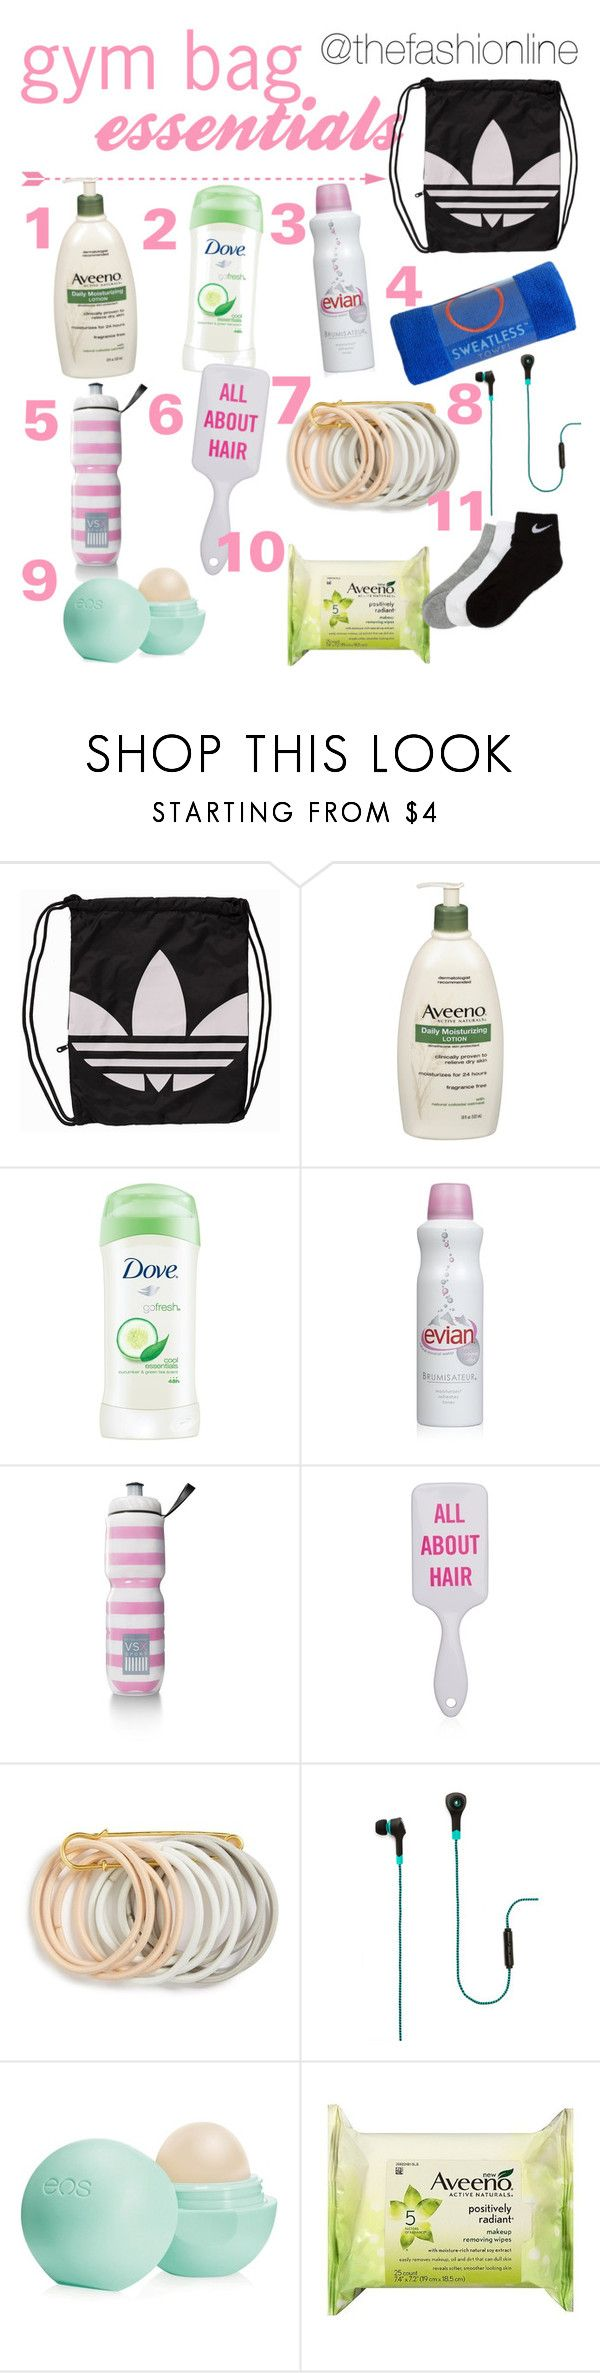 """What's In My Gym Bag"" by thefashionline ❤ liked on Polyvore featuring adidas Originals, Aveeno, Dove, Victoria's Secret, Odeme, Merkury Innovations, Eos and NIKE"